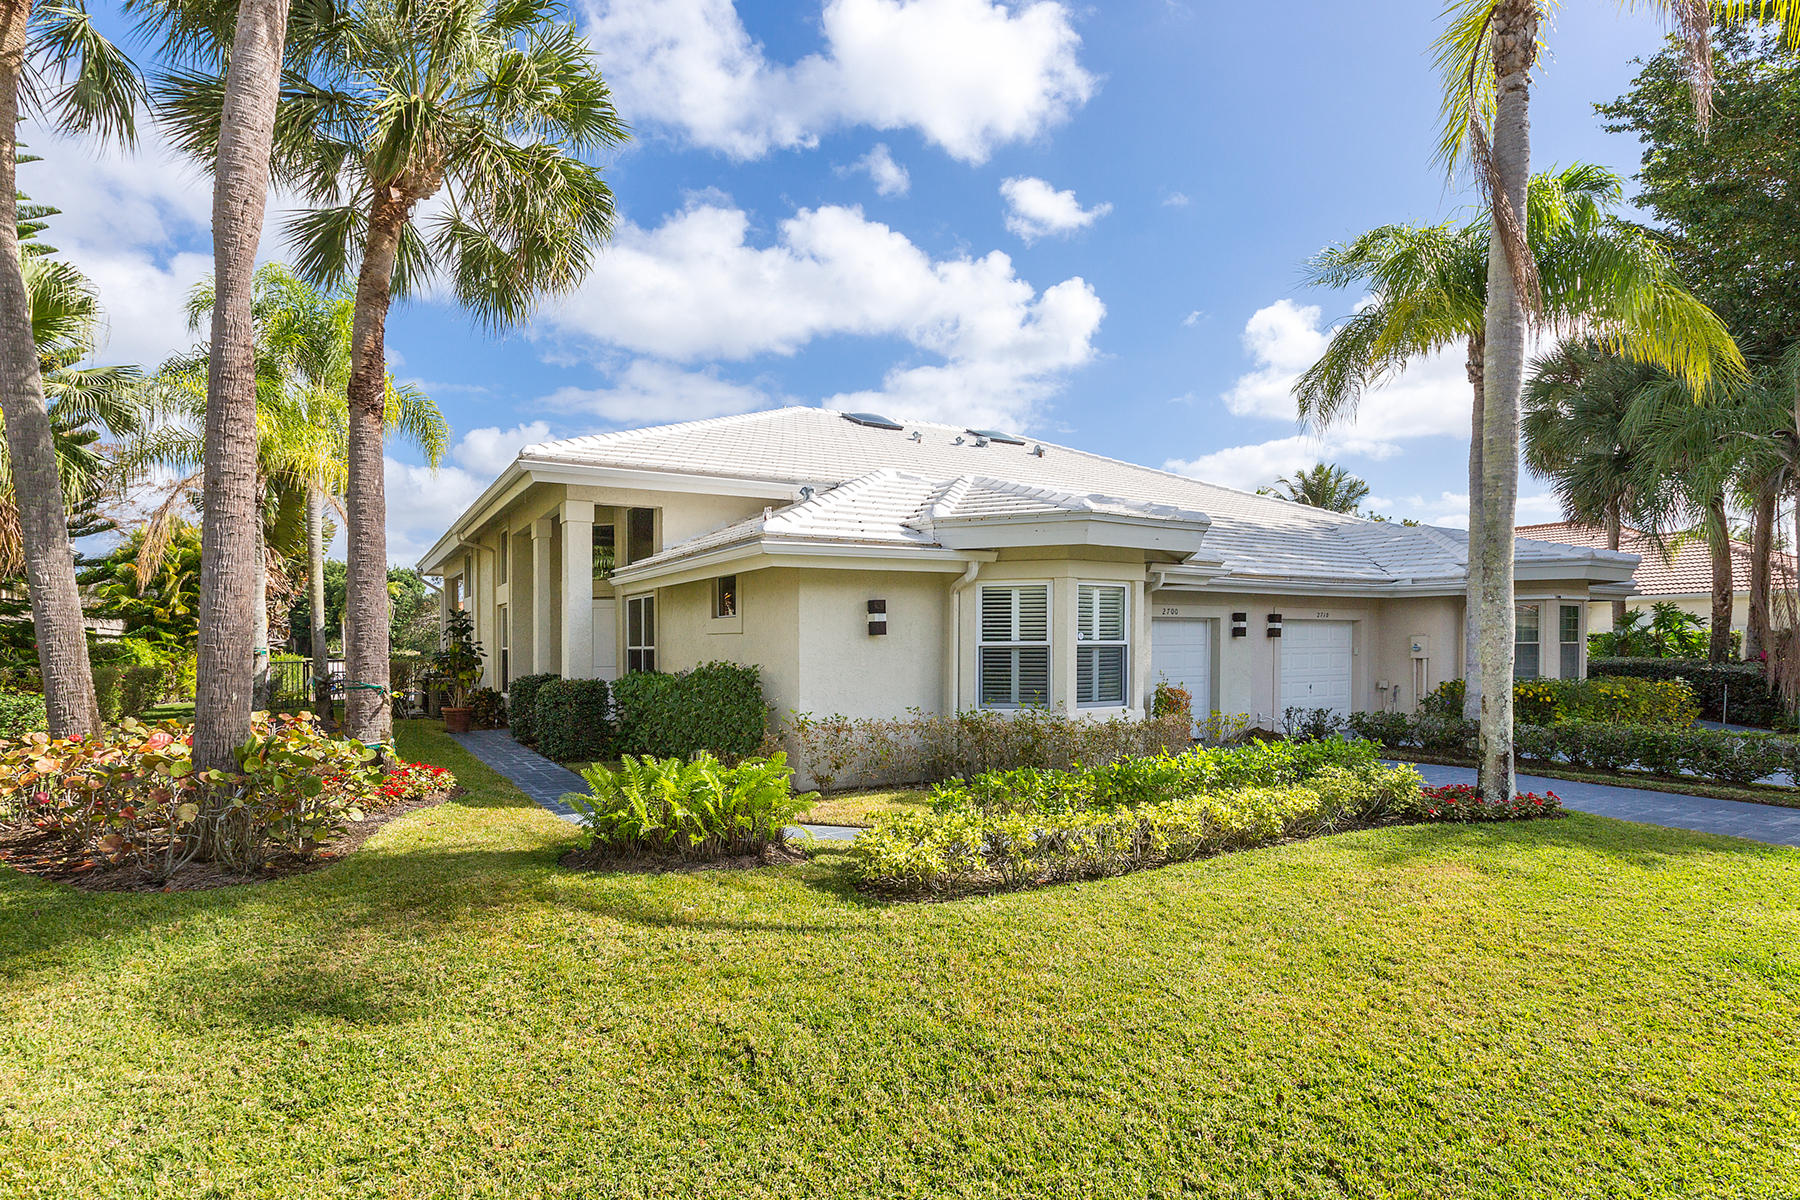 2700 Twin Oaks Way, Wellington, Florida 33414, 2 Bedrooms Bedrooms, ,2.1 BathroomsBathrooms,Villa,For Sale,Palm Beach Polo,Twin Oaks,RX-10594000